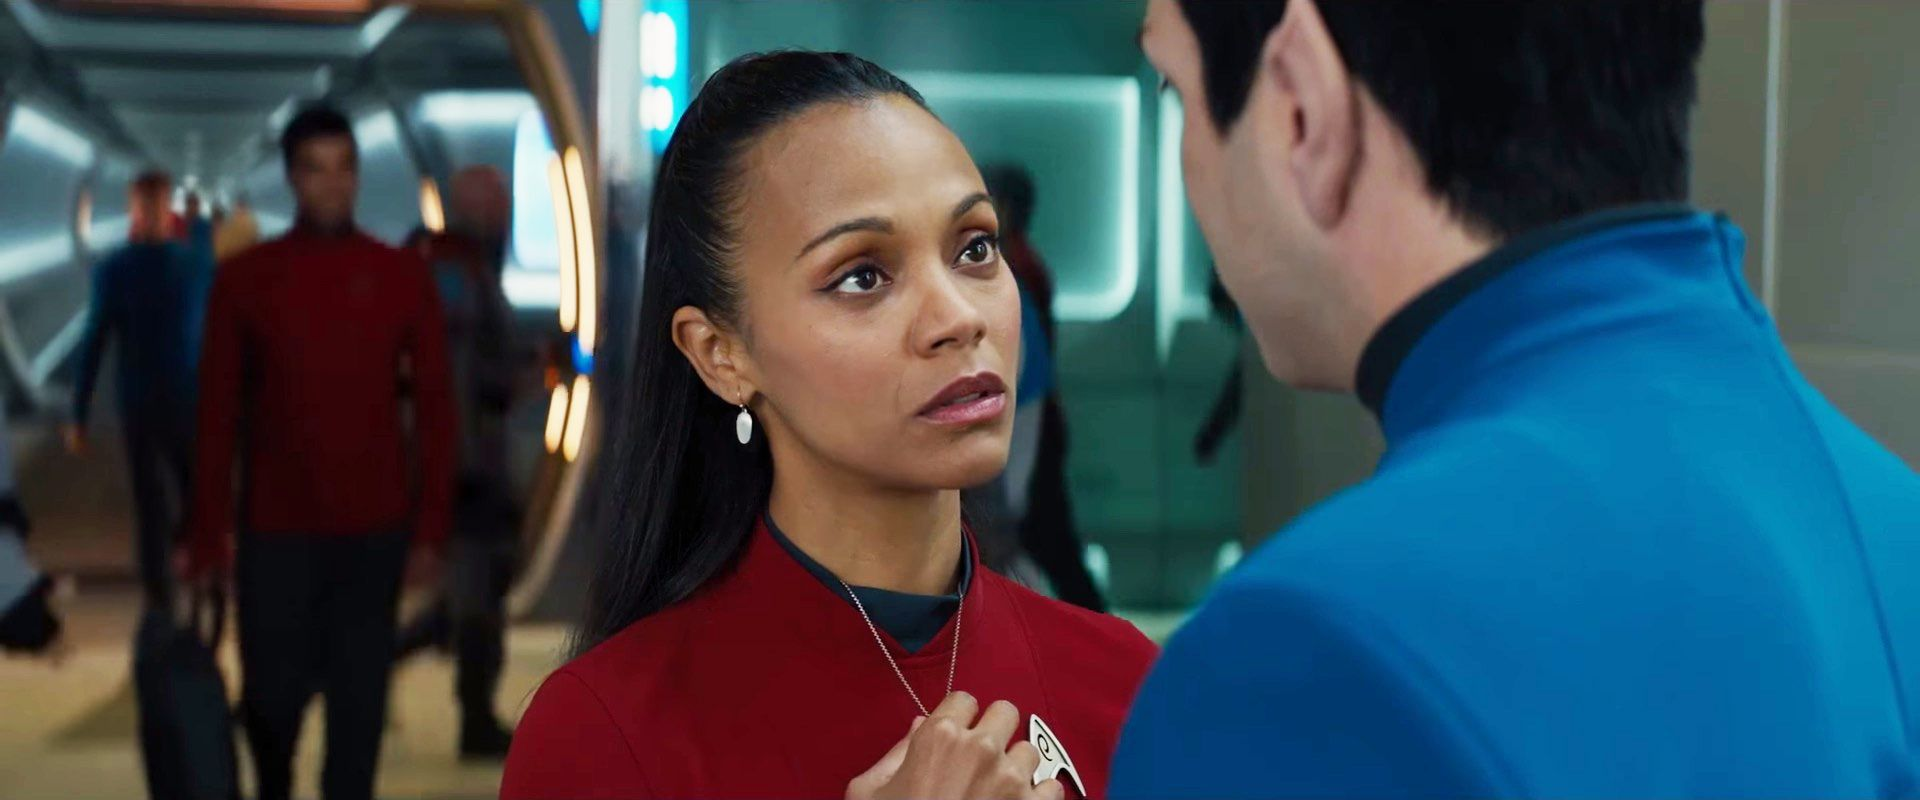 Star Trek Beyond Spock and Uhura call it quits in new clip